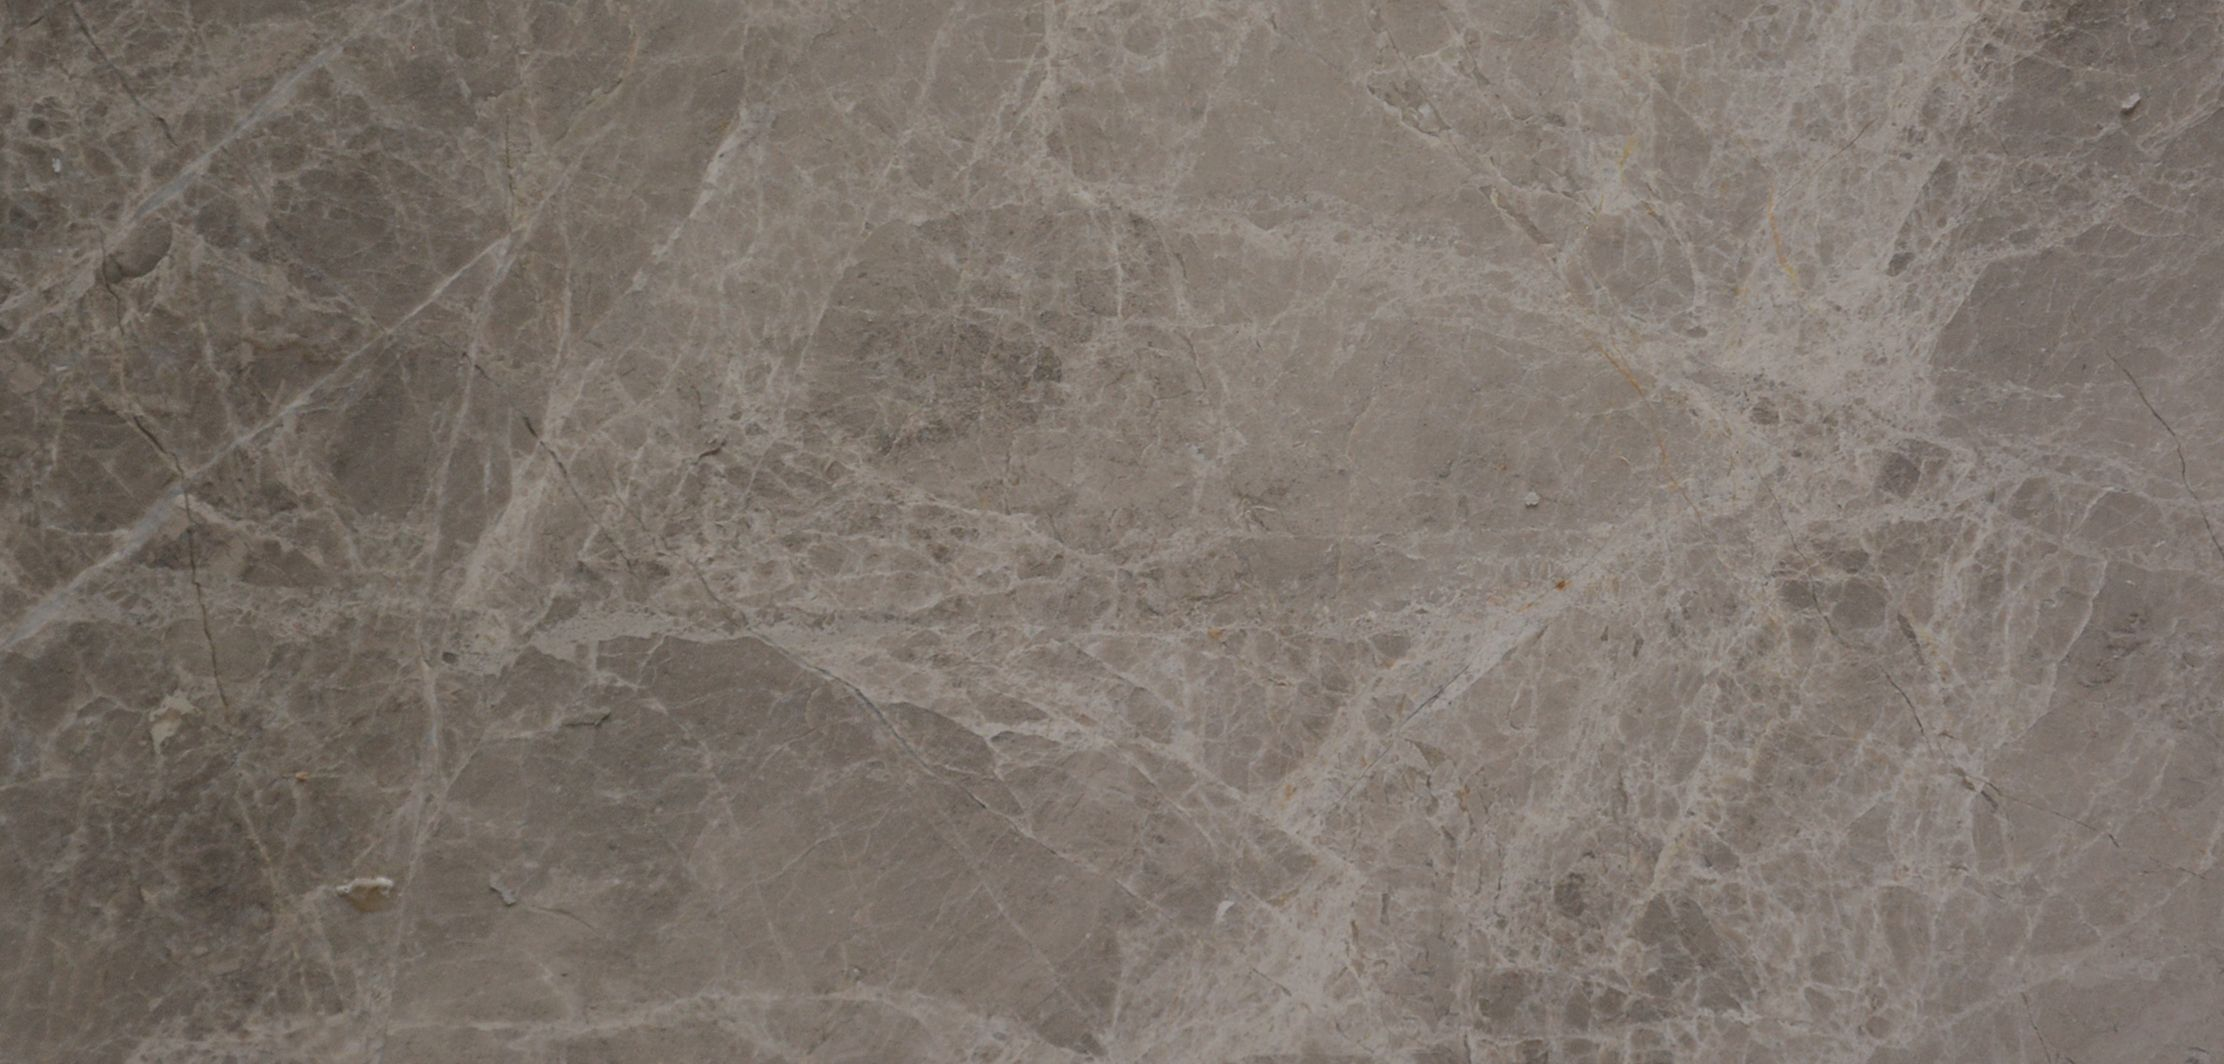 Bathroom Floor and Wall Tile Natural Stone Personal Selection